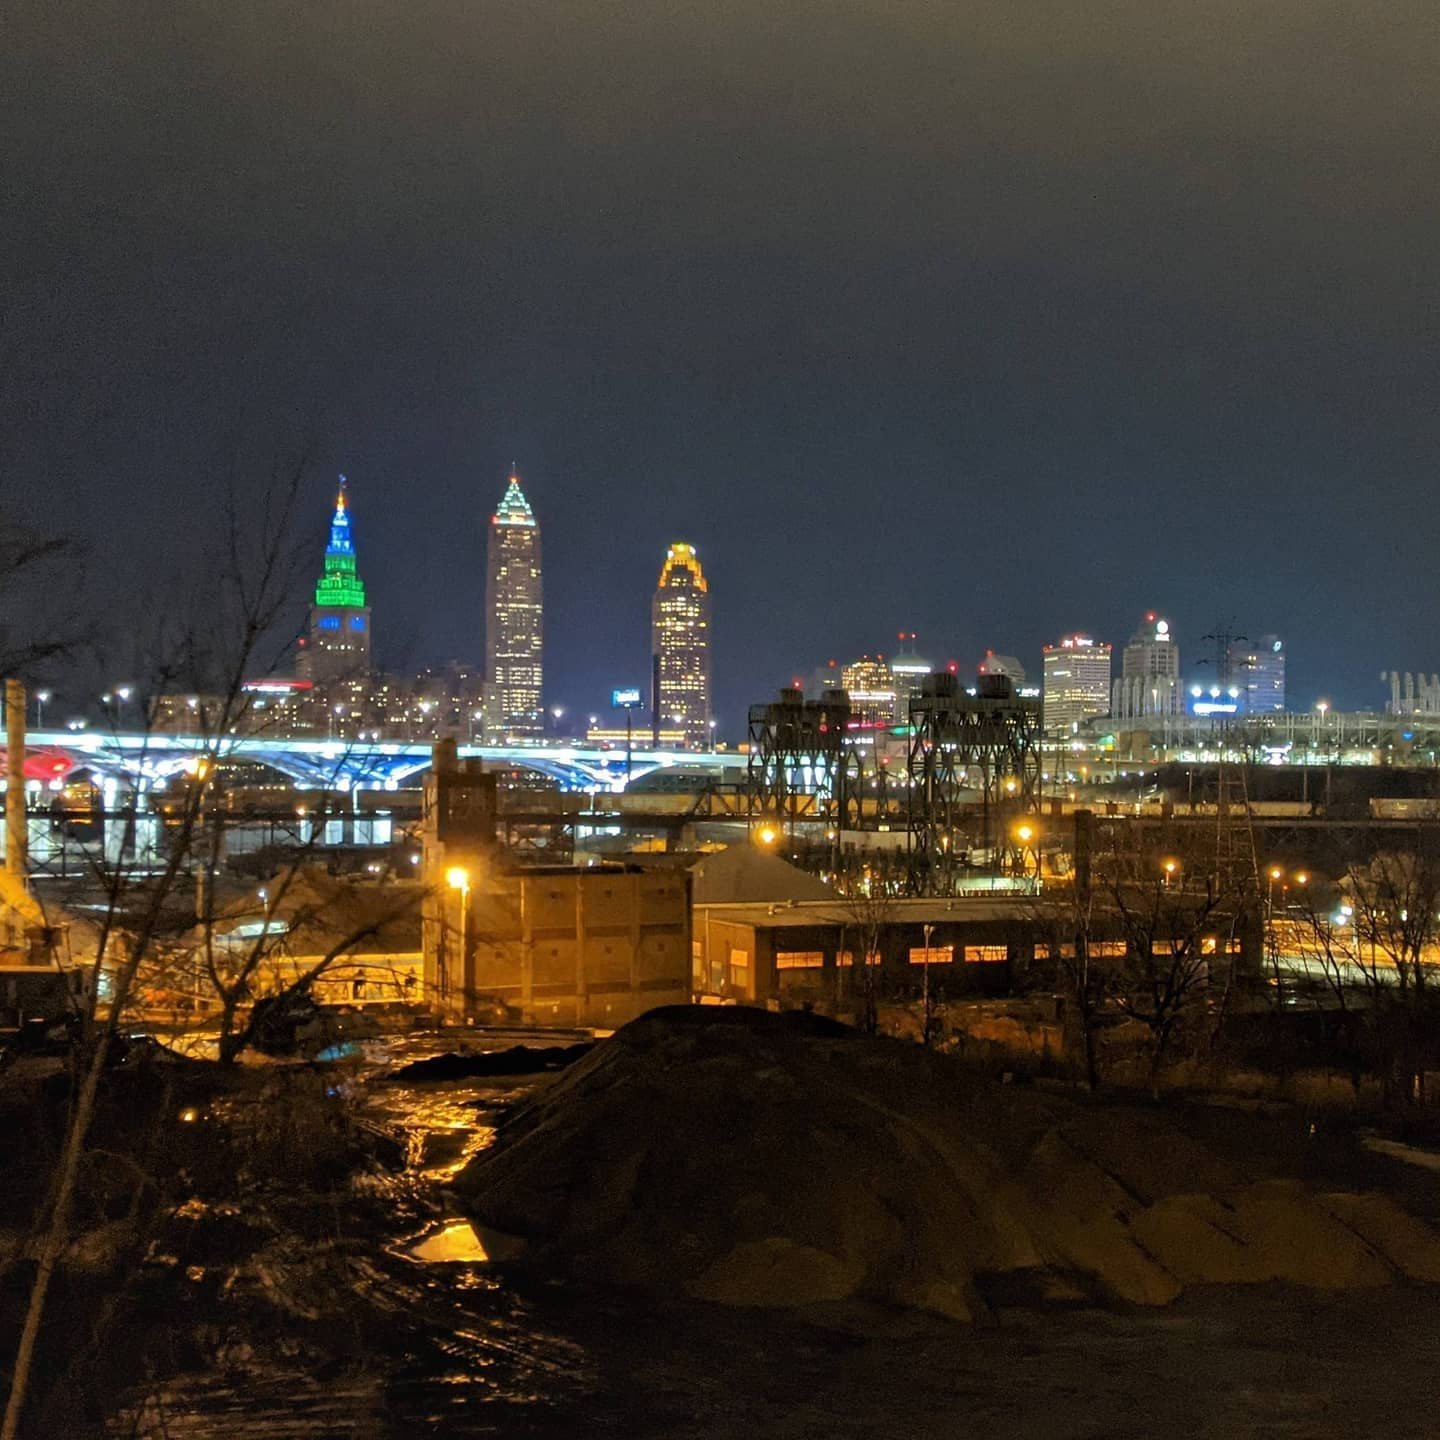 From my walk last night. A night shot of Cleveland Ohio from Tremont. #cleveland